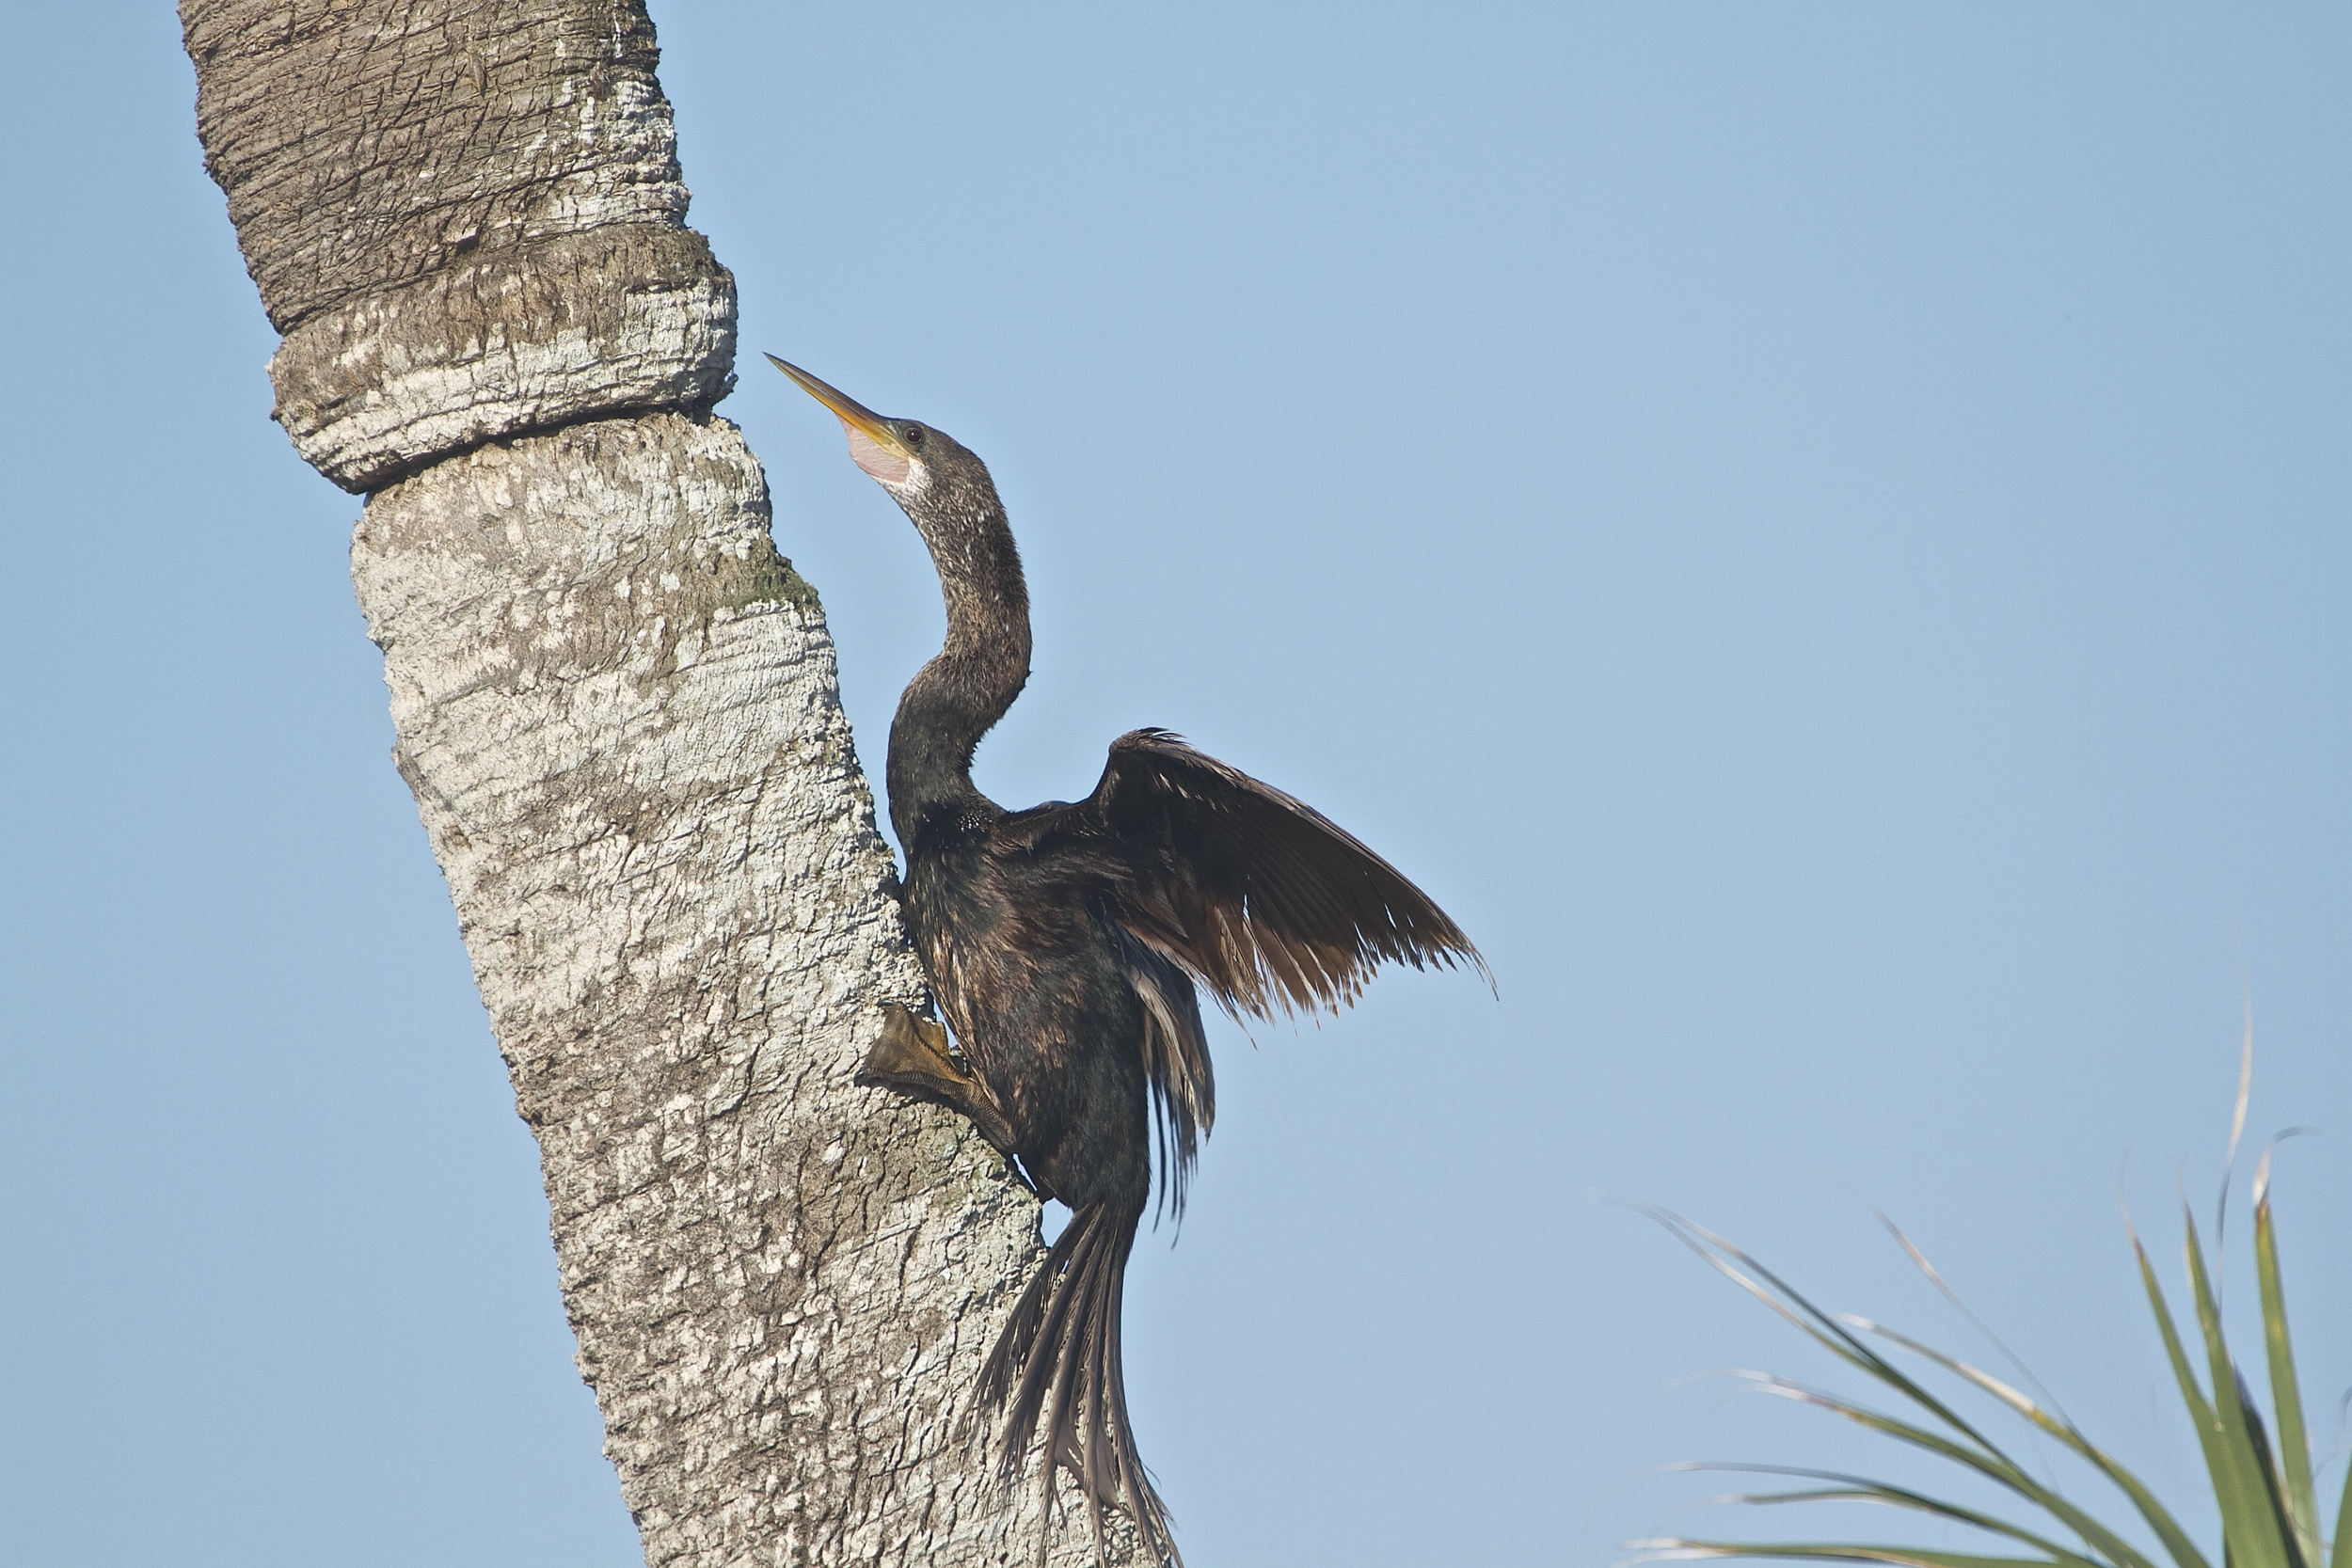 A male Anhinga climbs up a palm trunk to warm in the morning sun.